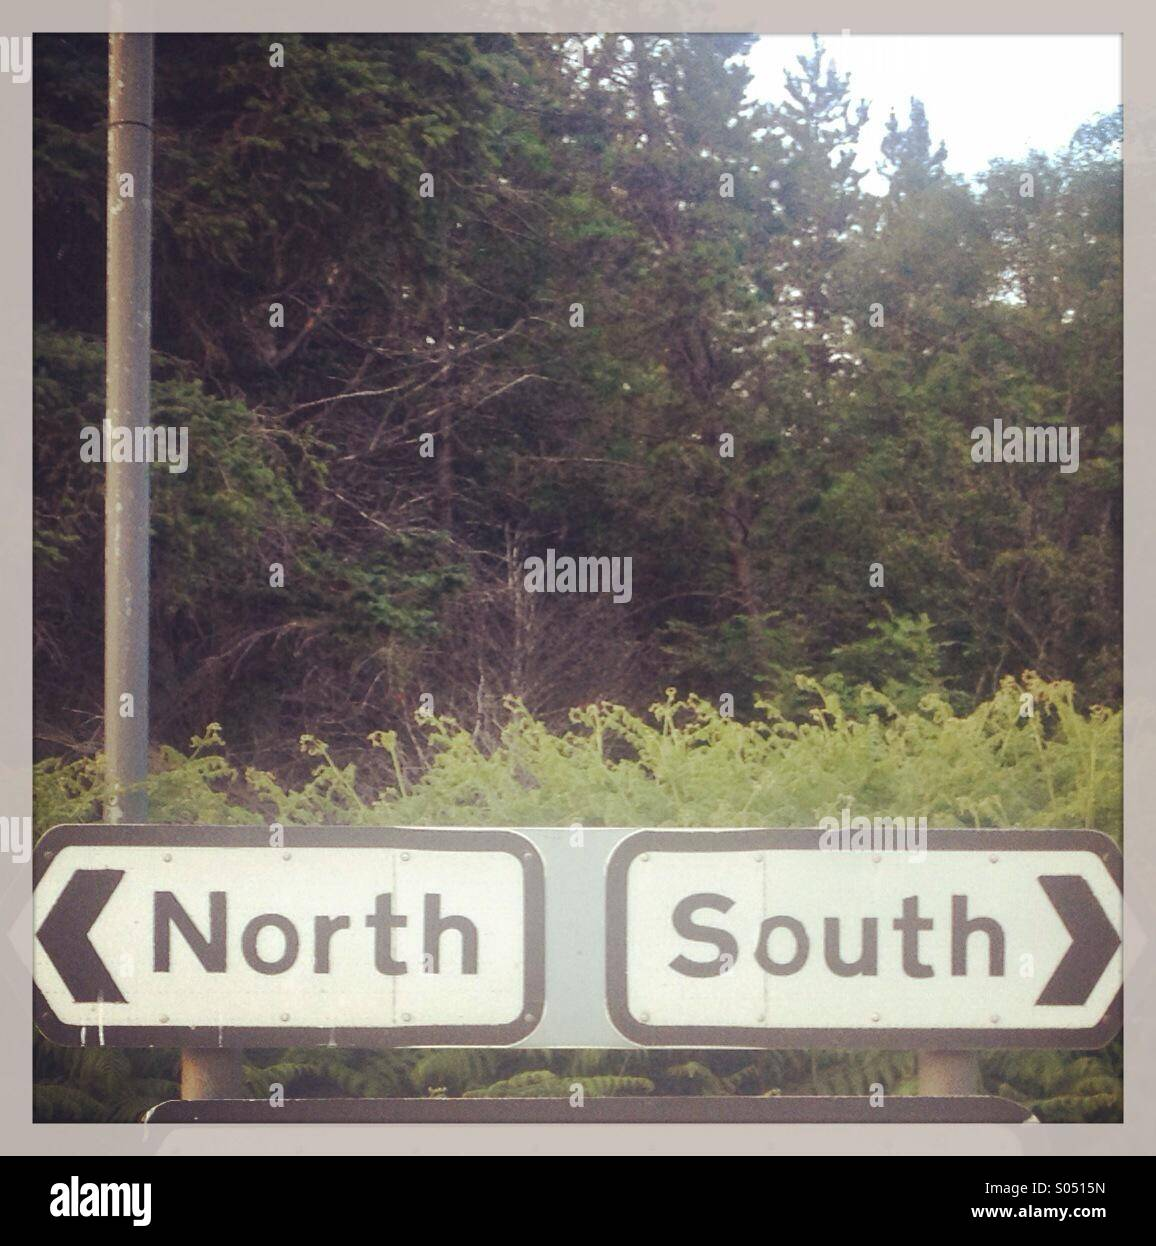 North or South? - Stock Image